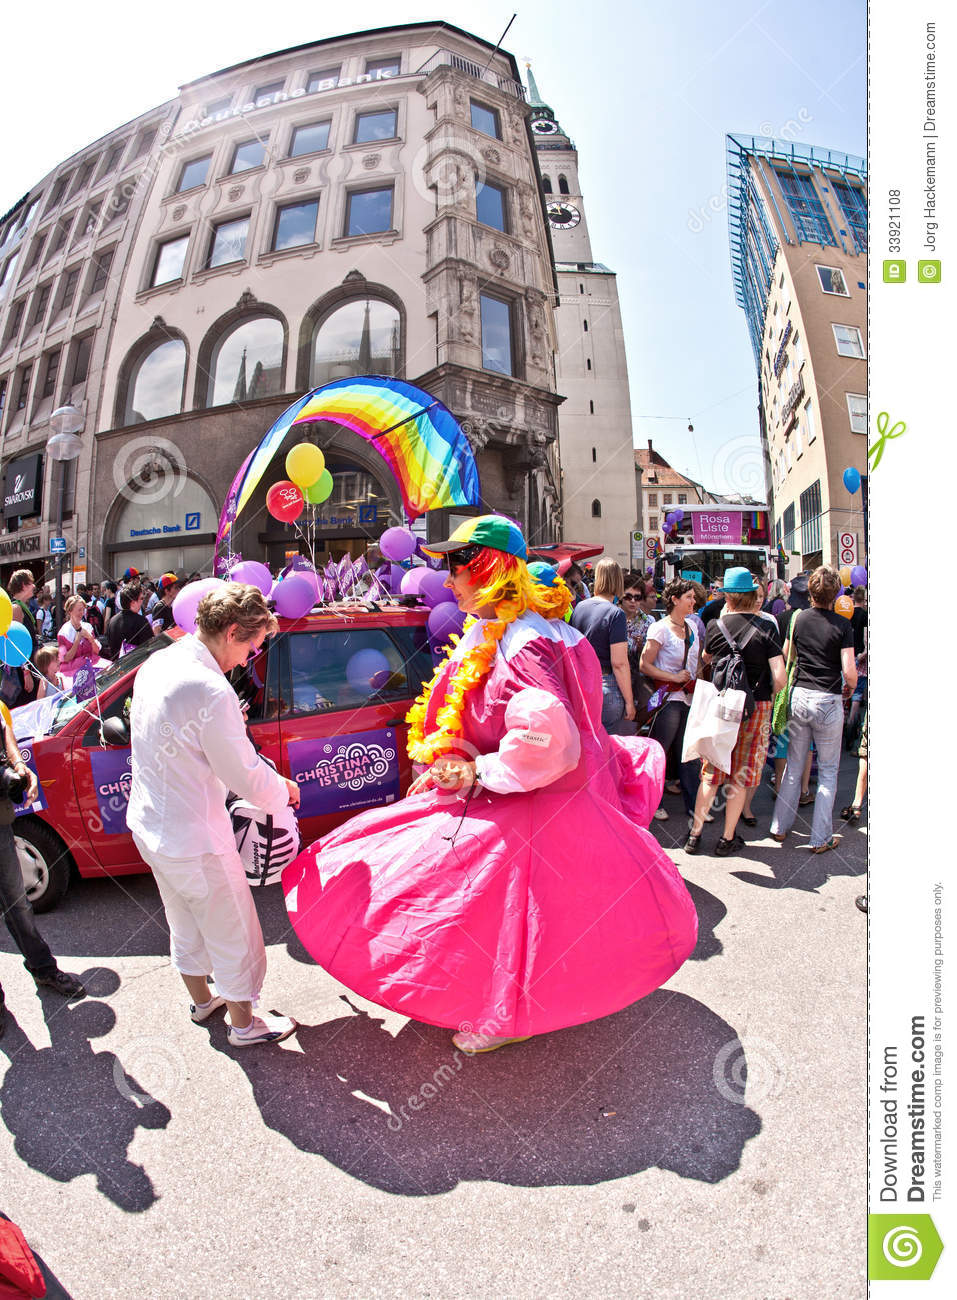 People celebrate the christopher street day in munich editorial stock